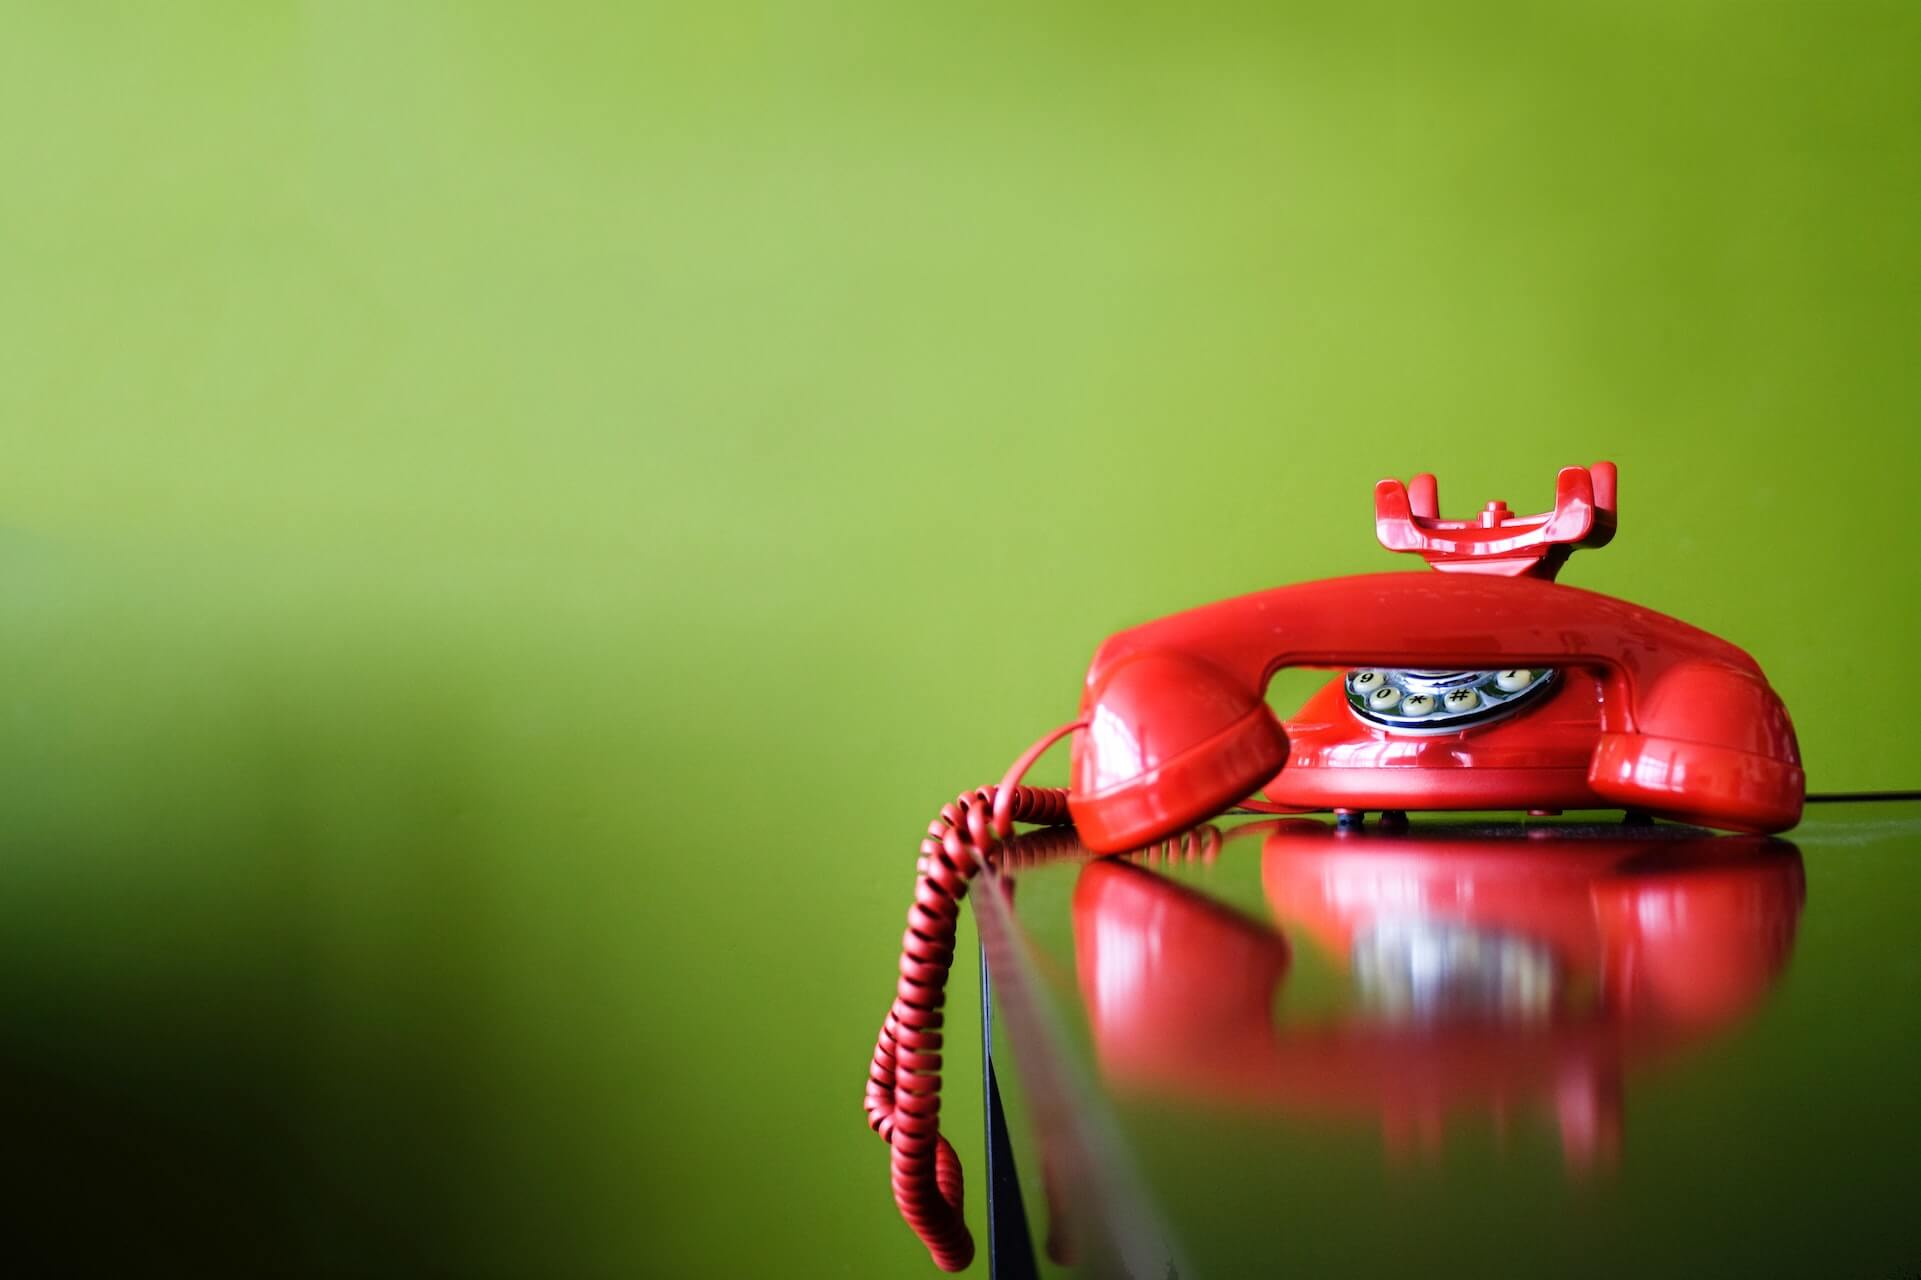 red rotary telephone on black desk in front of a green wall